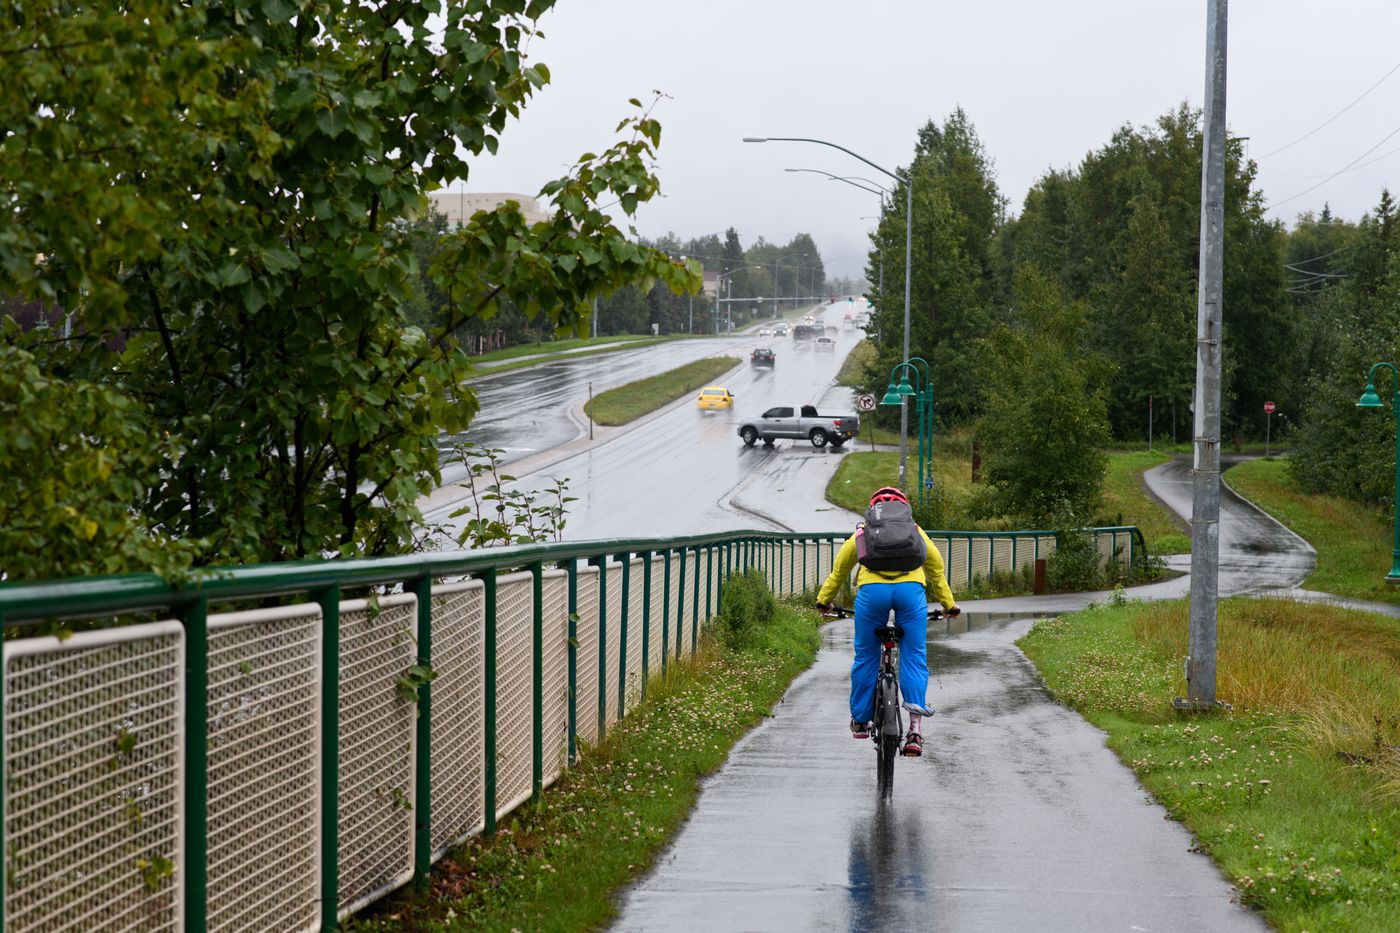 Kikkan Randall rides from her chemotherapy treatment to her mother's home in East Anchorage through the rain on Aug. 21. To stay active, Randall tried to bike to as many of treatments as she could. (Marc Lester / ADN)